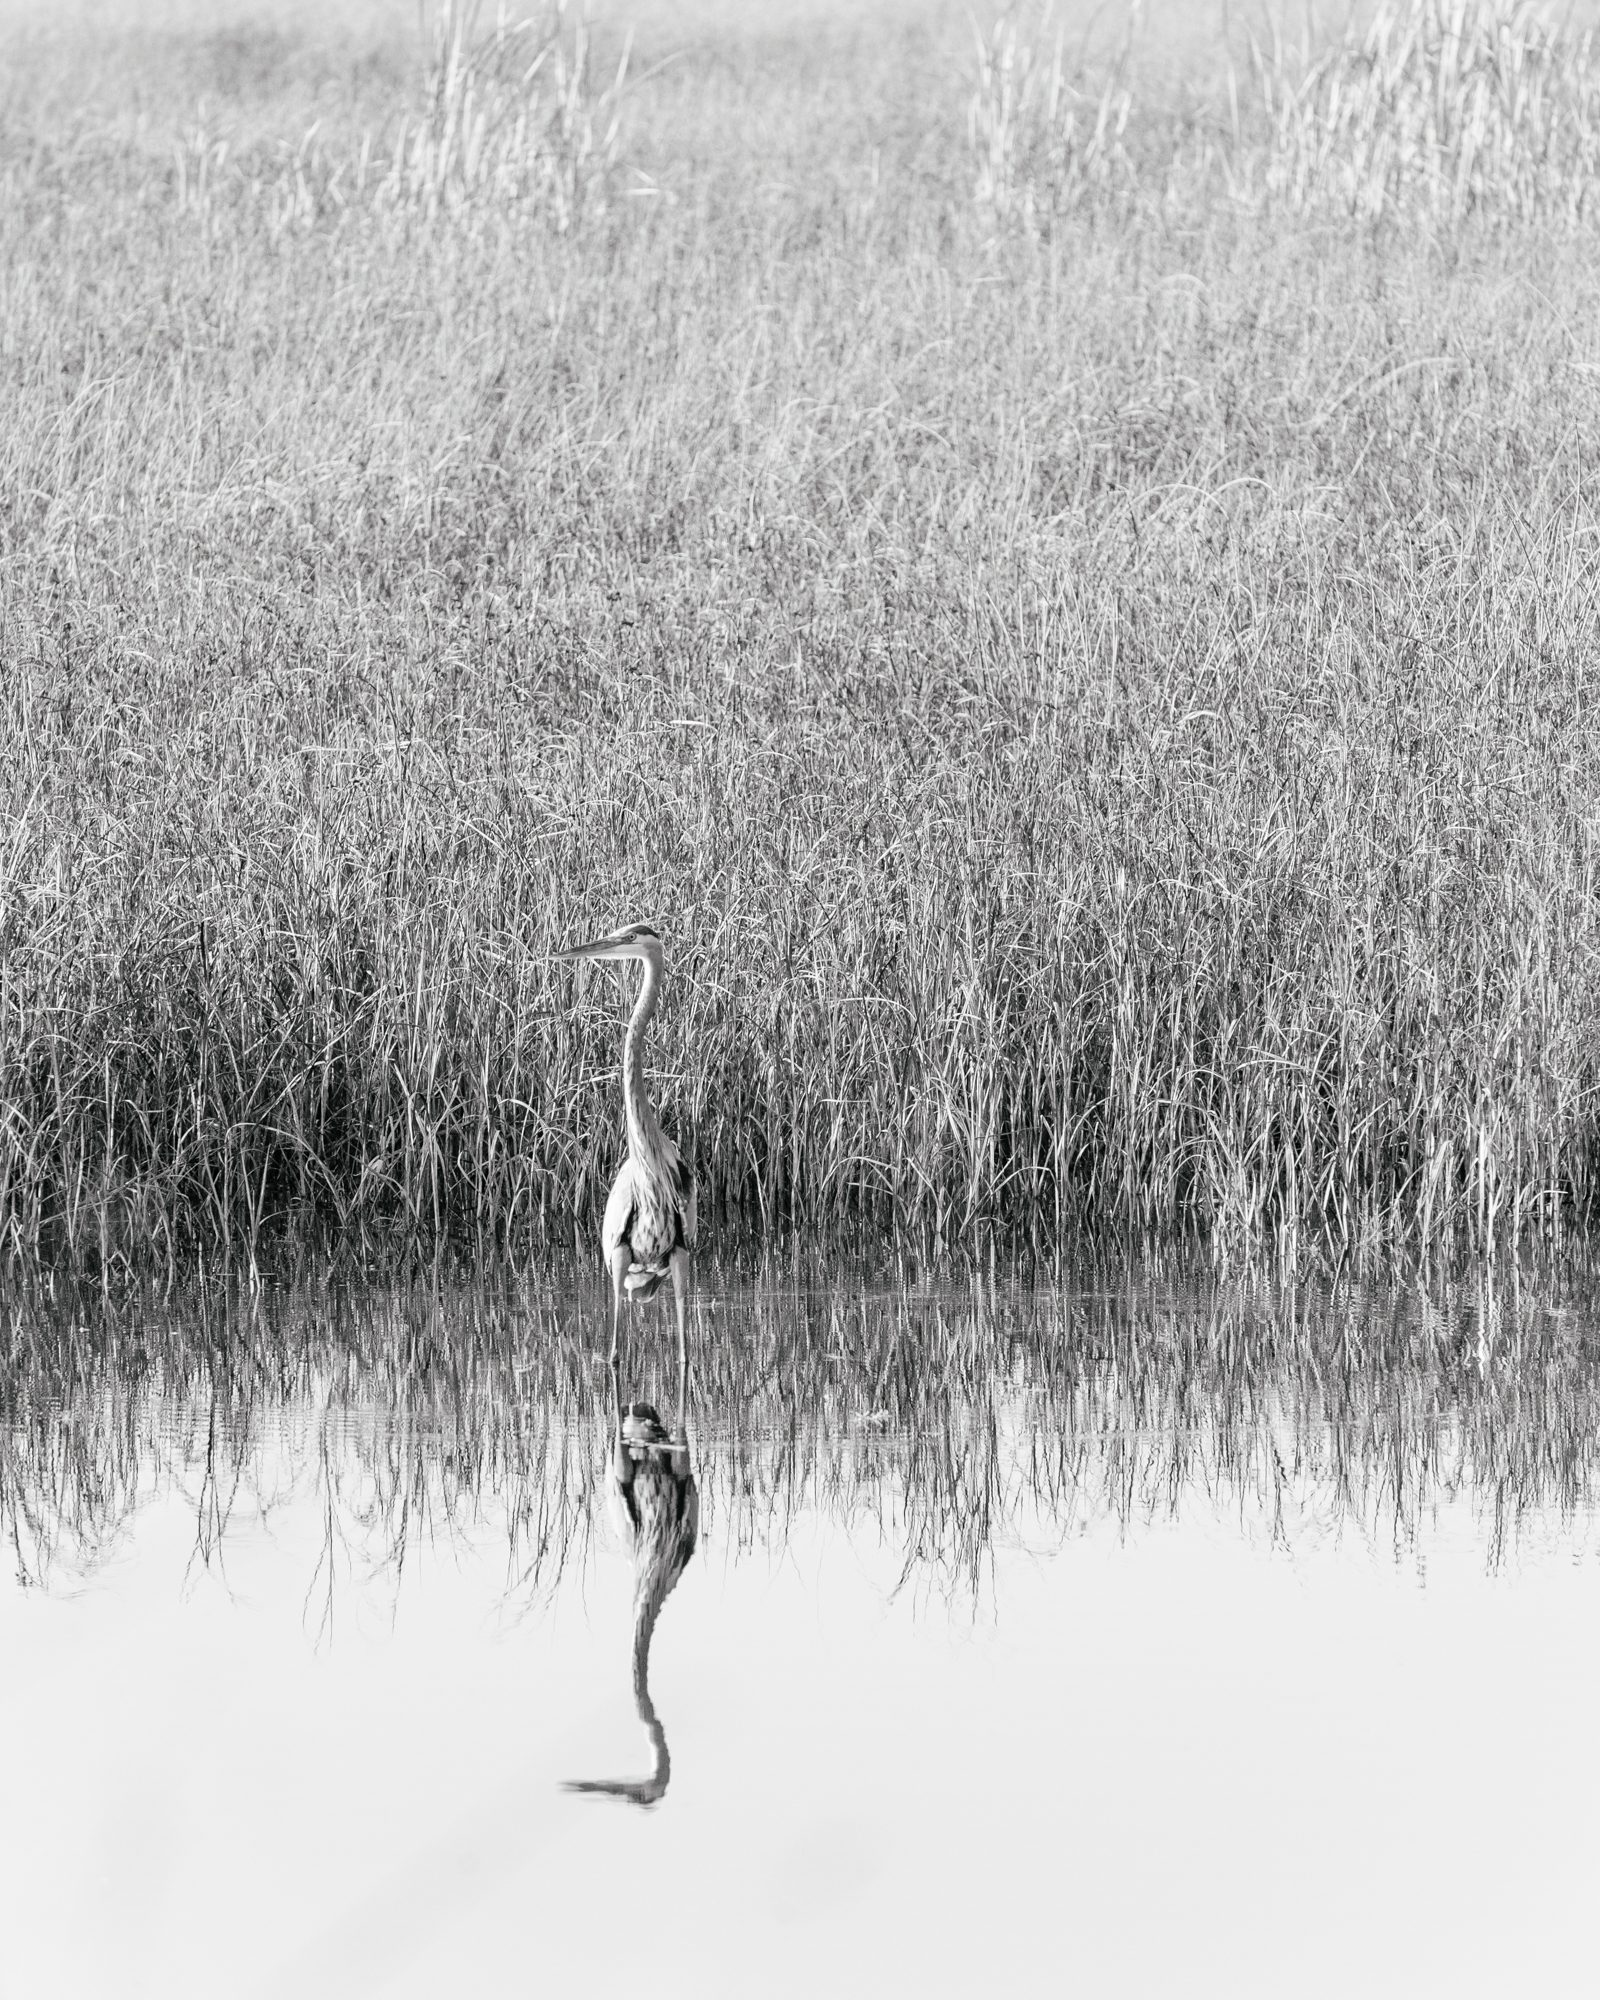 Heron In The Grasses 1